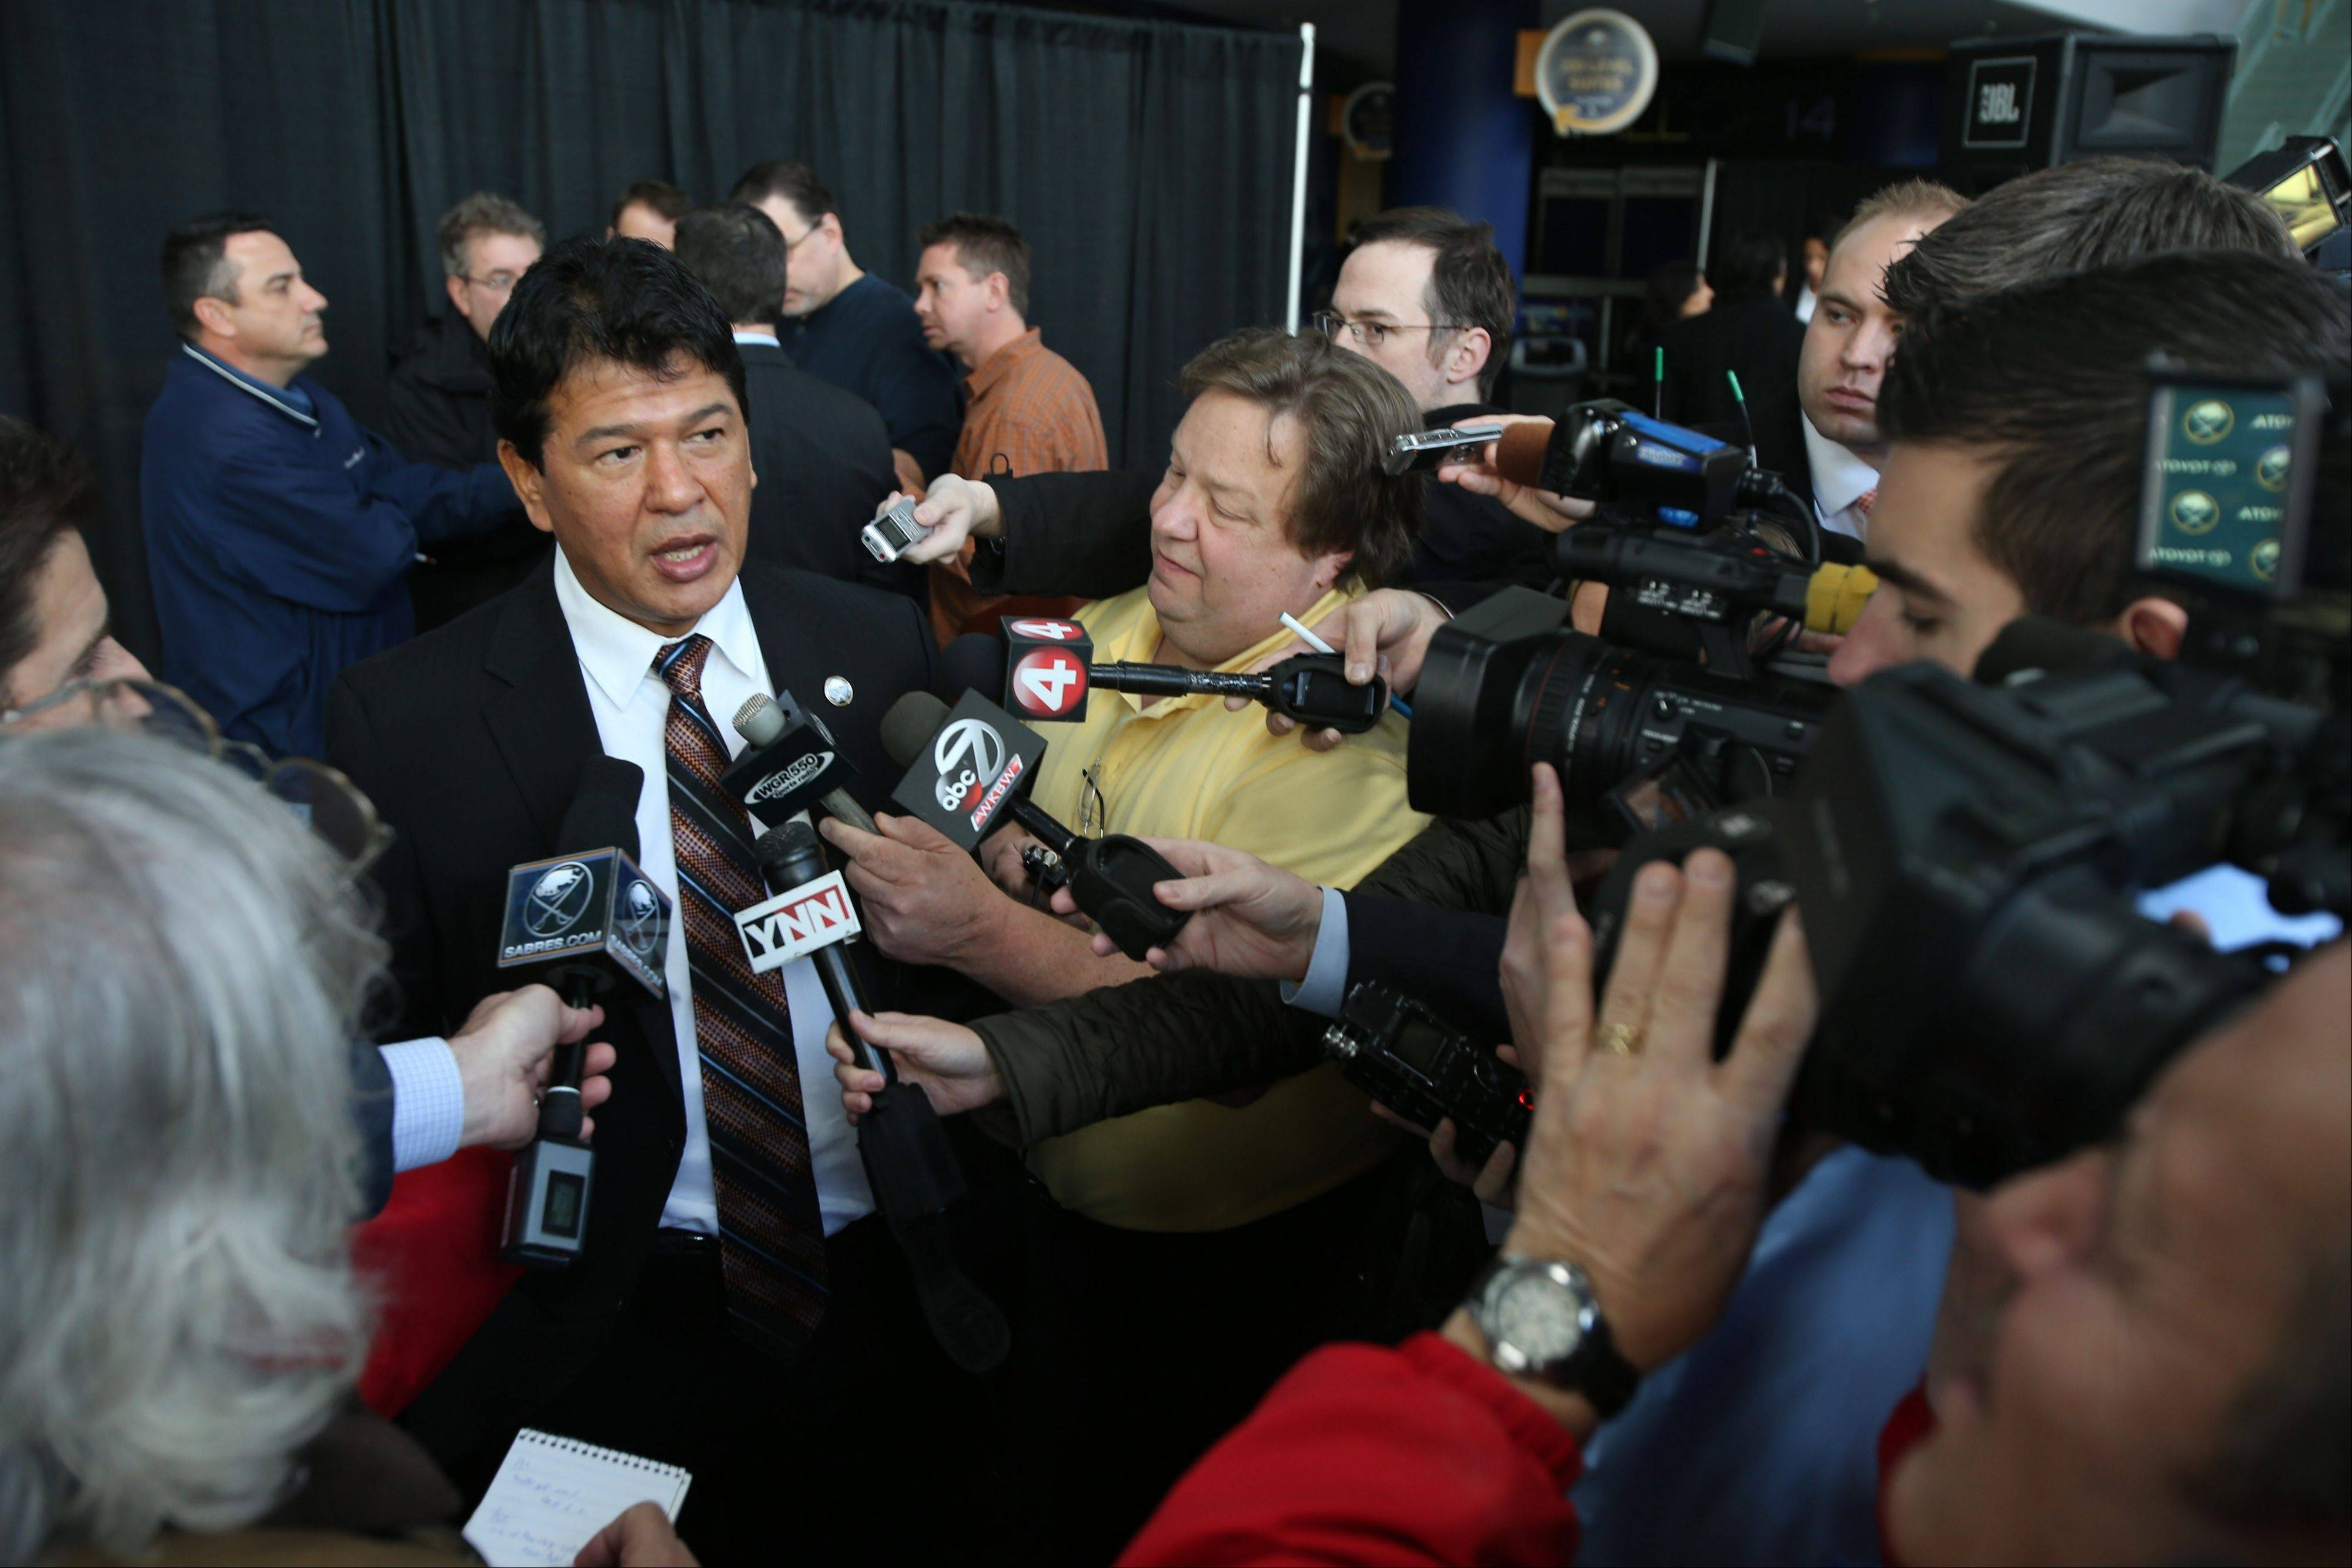 Ted Nolan, new head coach of the Buffalo Sabres, is interviewed by the media following a news conference Wednesday. (AP Photo/The Buffalo News, Charles Lewis)